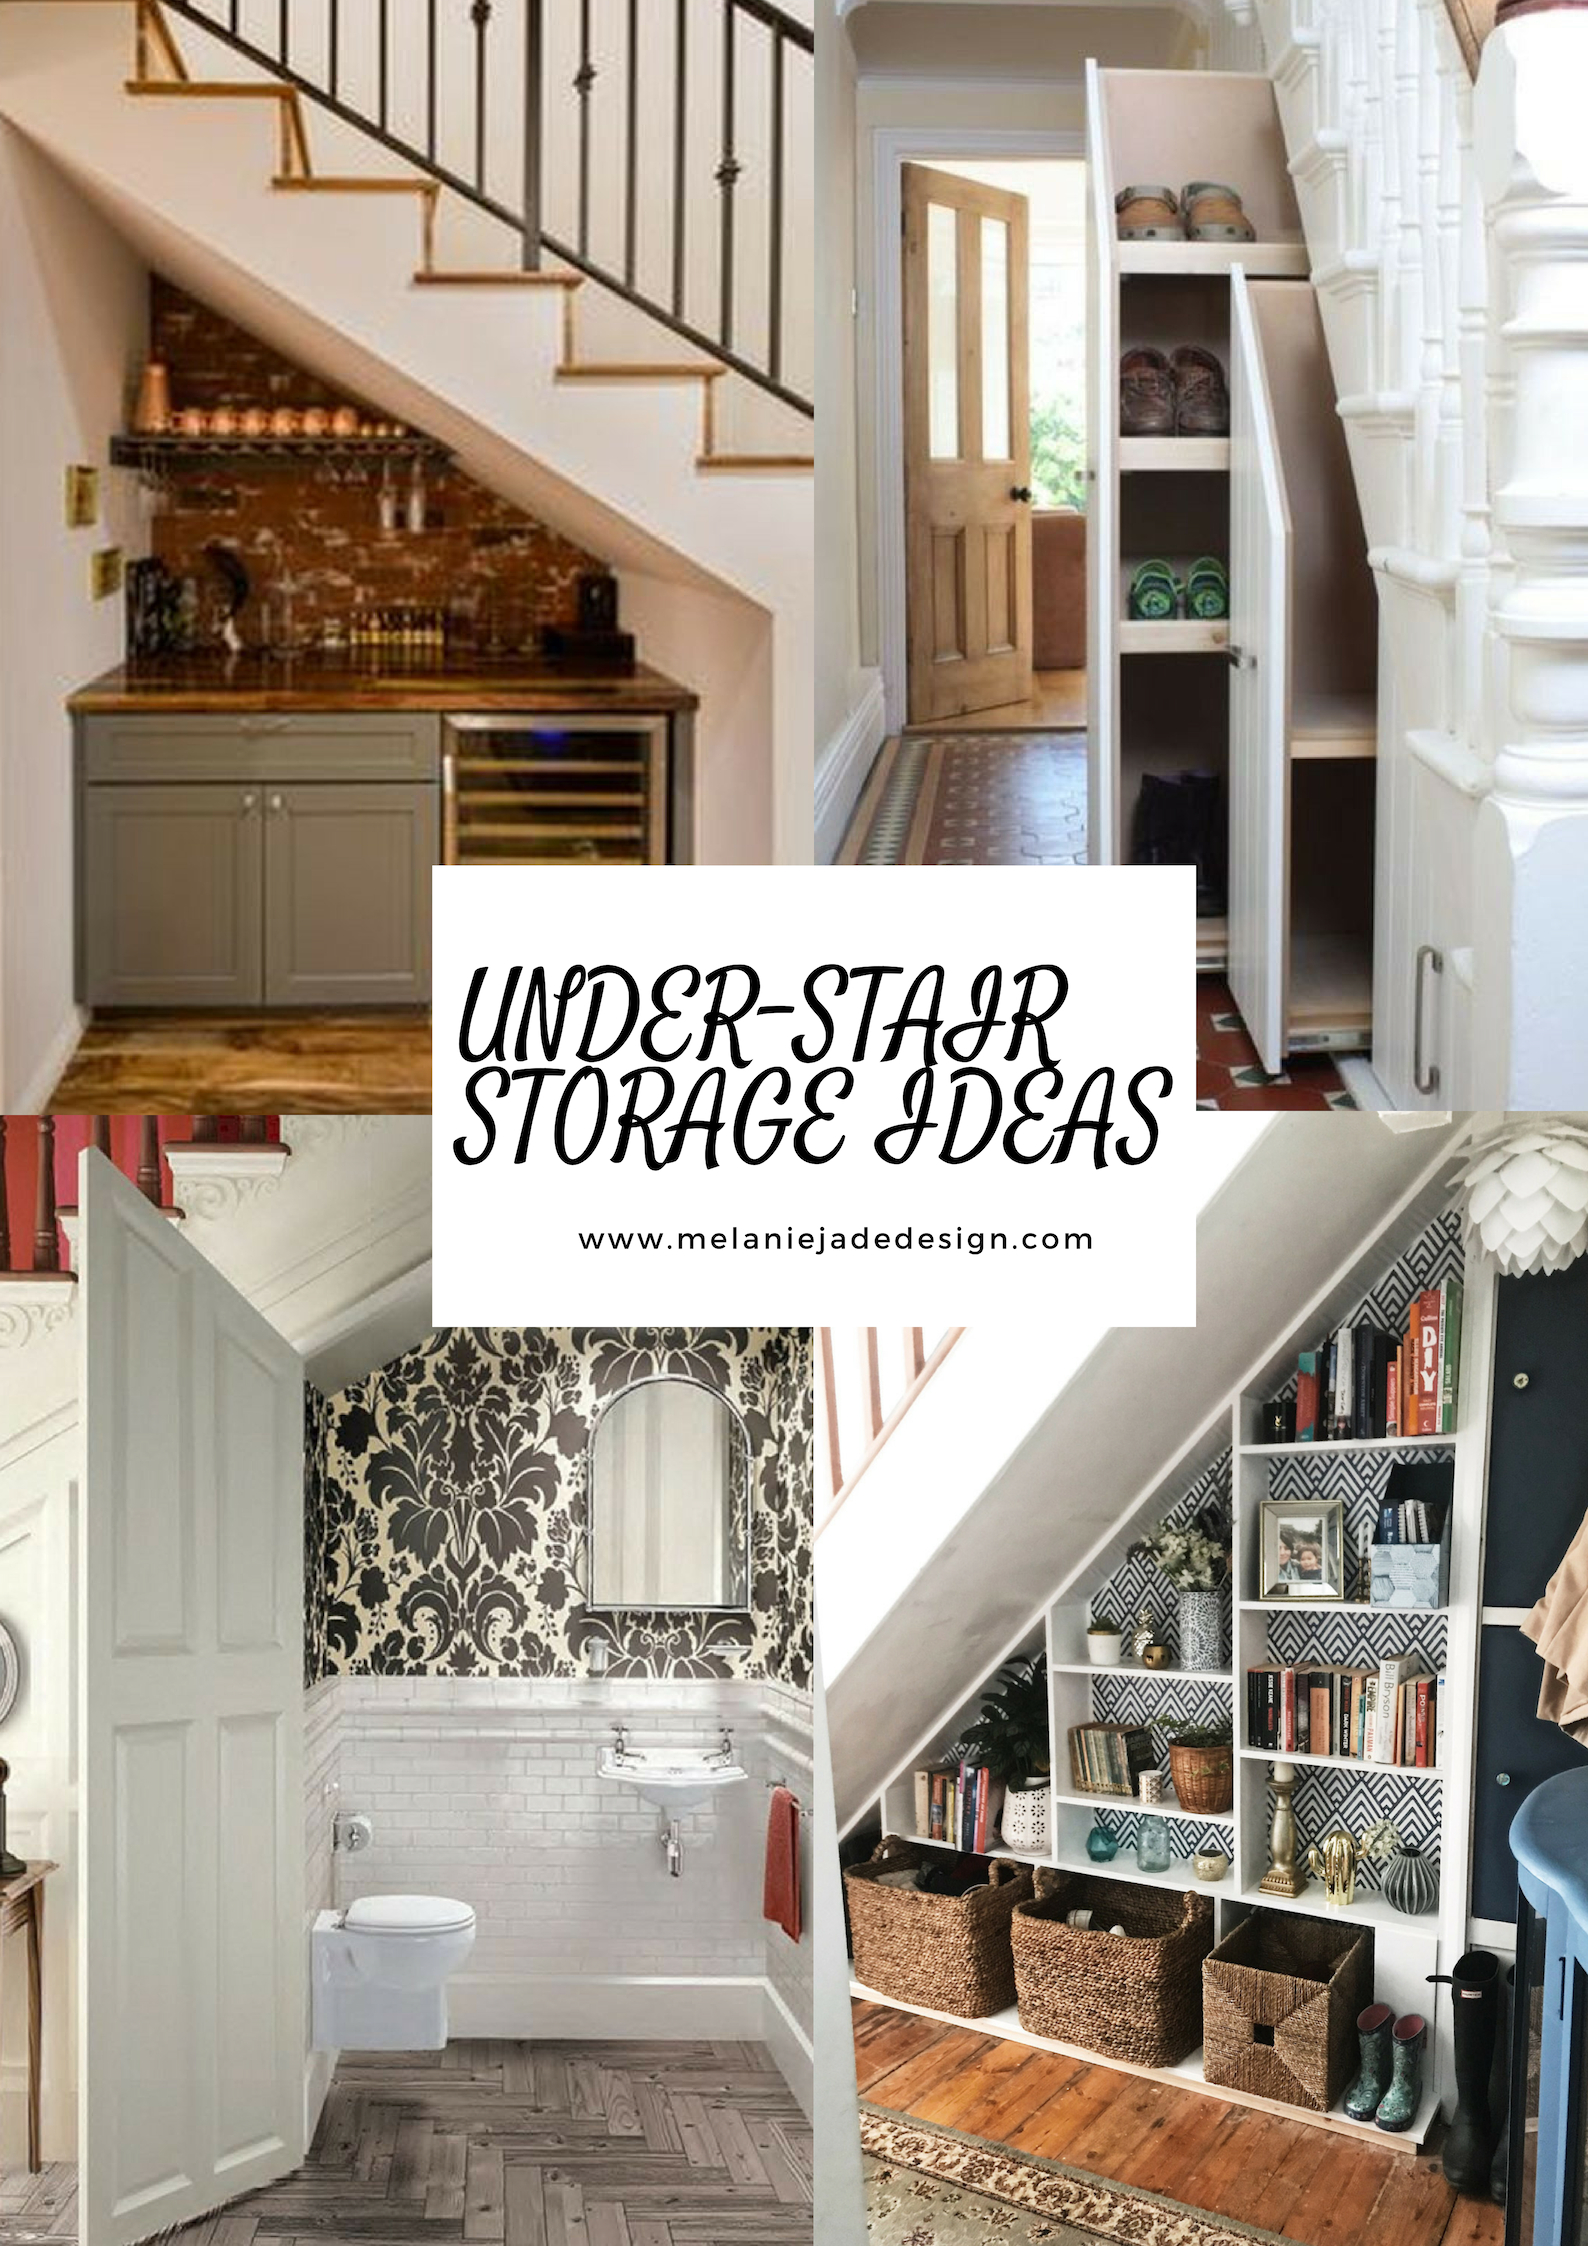 Under Stair Storage Ideas \u2014 Melanie Jade Design